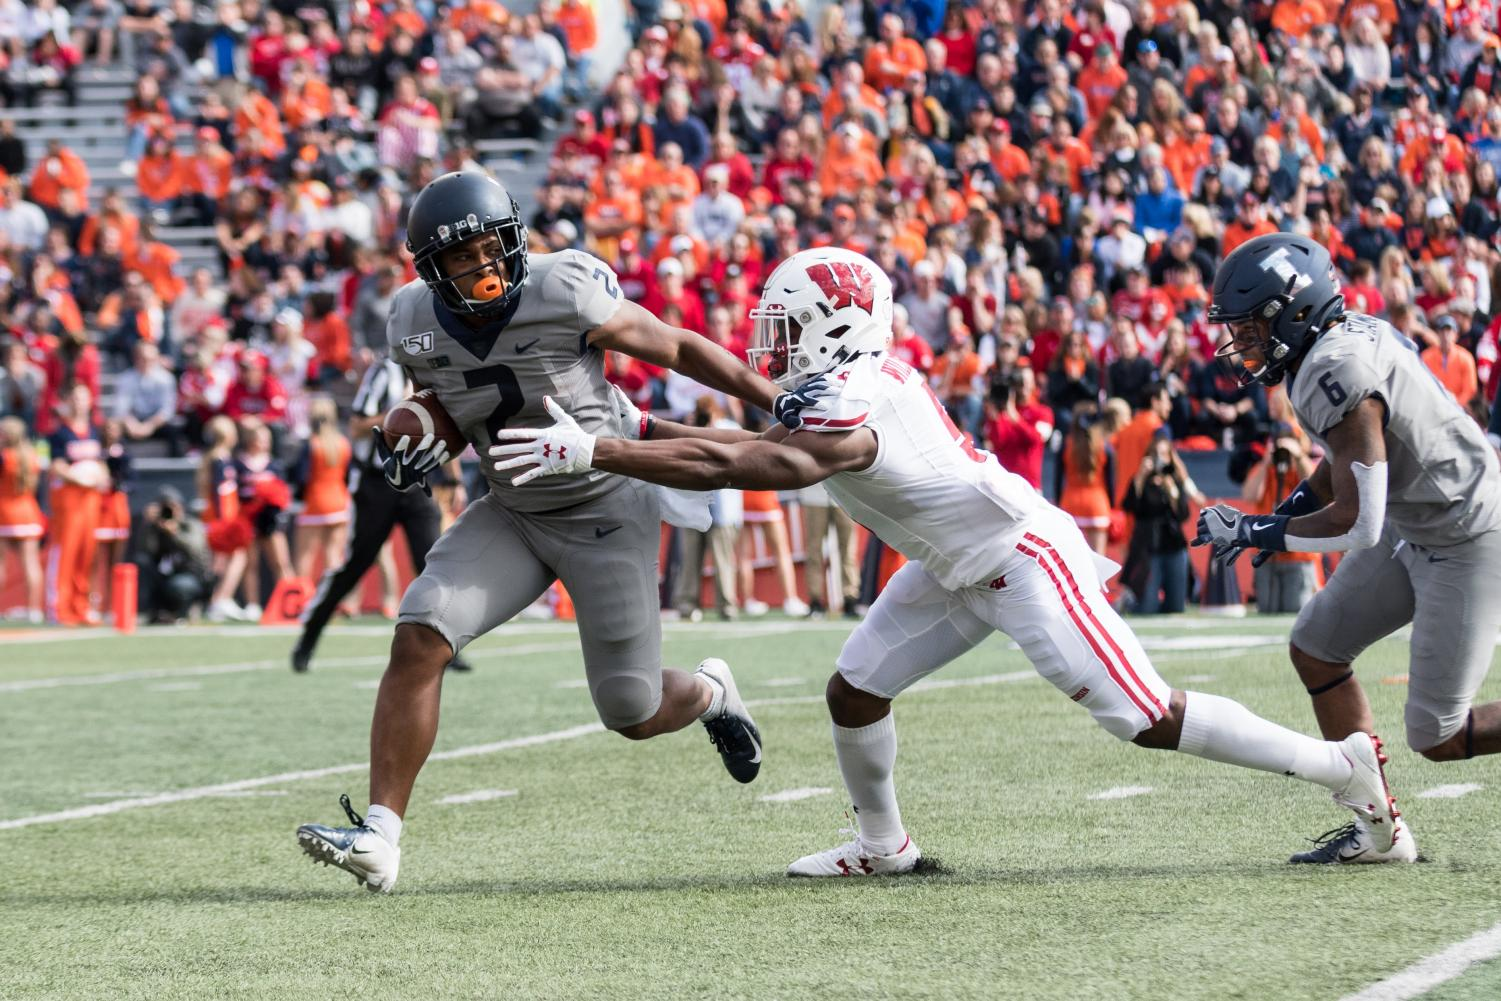 Illinois running back Reggie Corbin stiff arms a defender during the game against Wisconsin.  The Illini won 24-23.